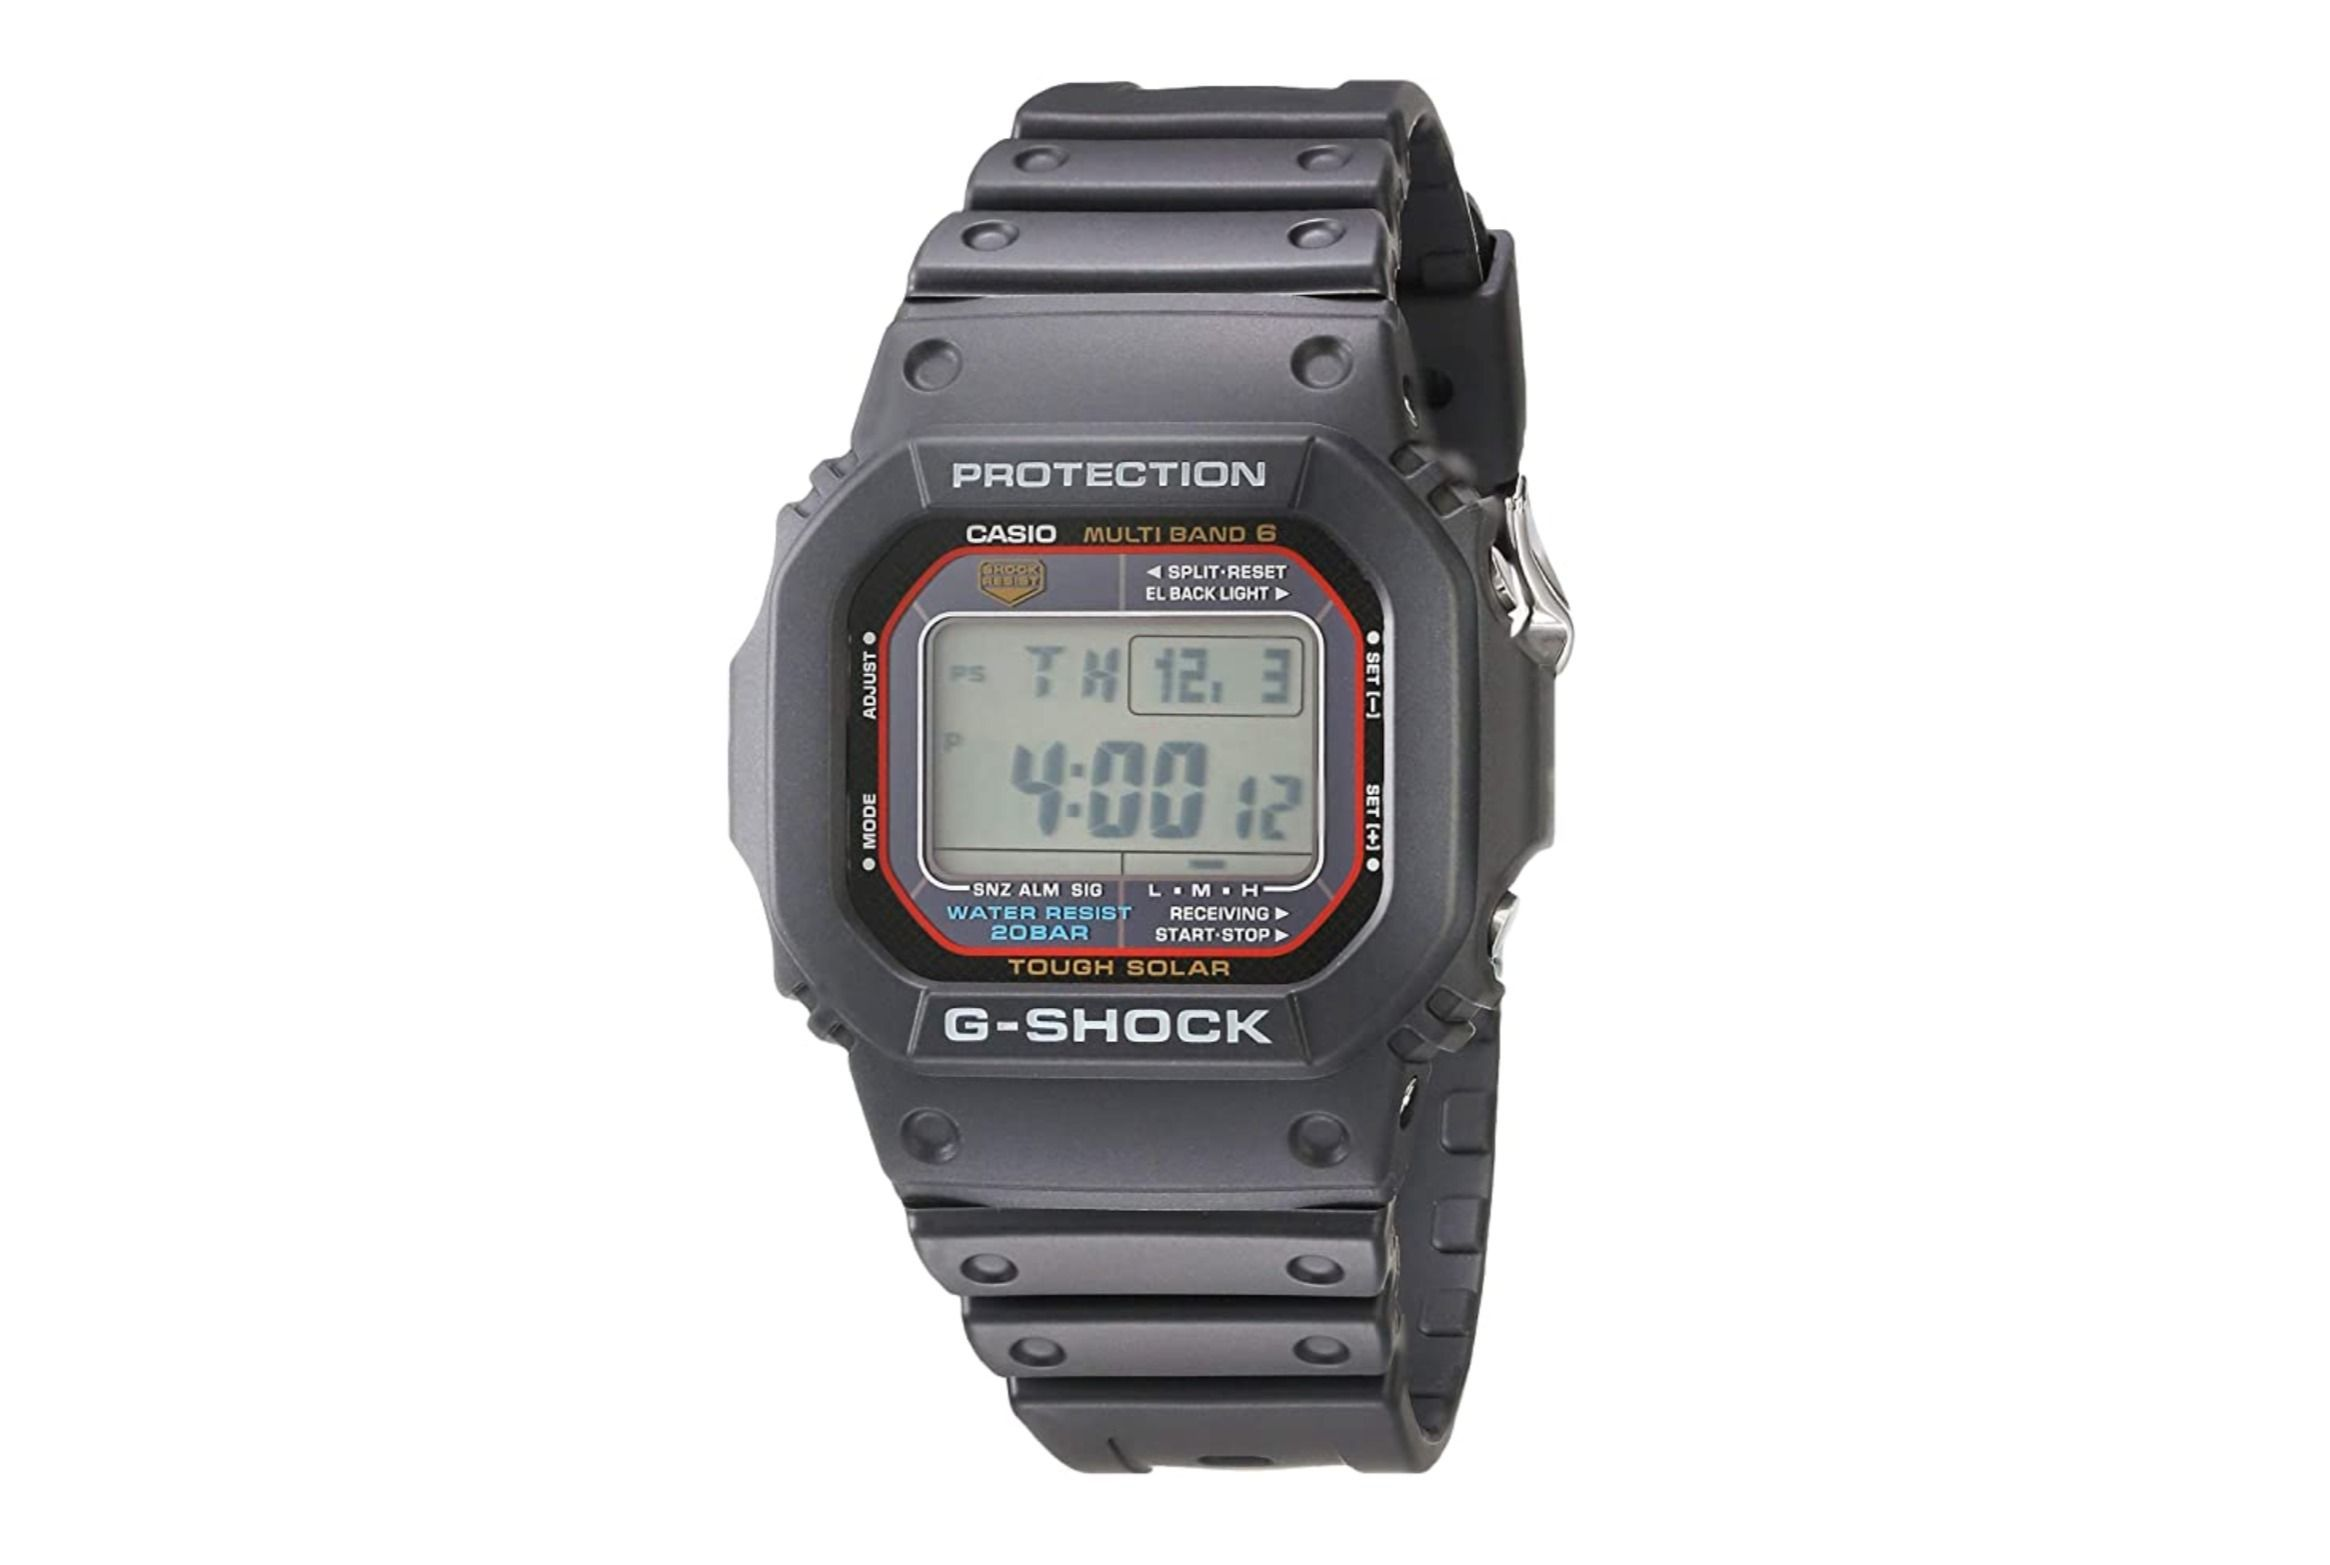 25 Boutique Watch Brands You Should Know About Submit a new text post. casio g shock quartz watch